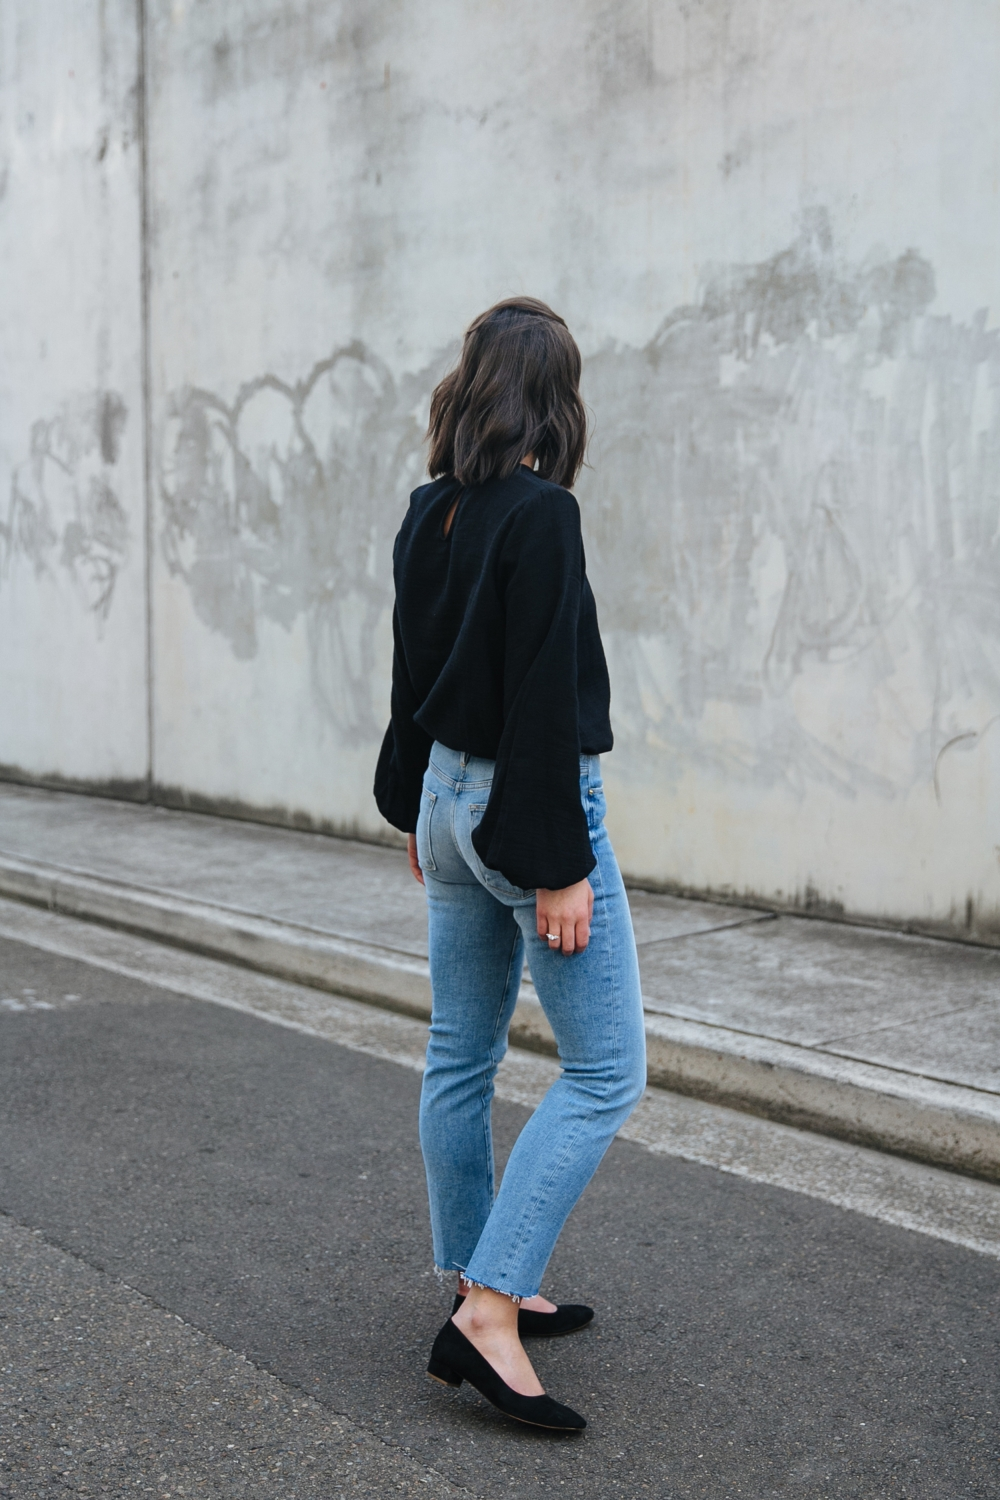 Black top and blue denim | street style | outfit | Australian Fashion Blogger | HarperandHarley